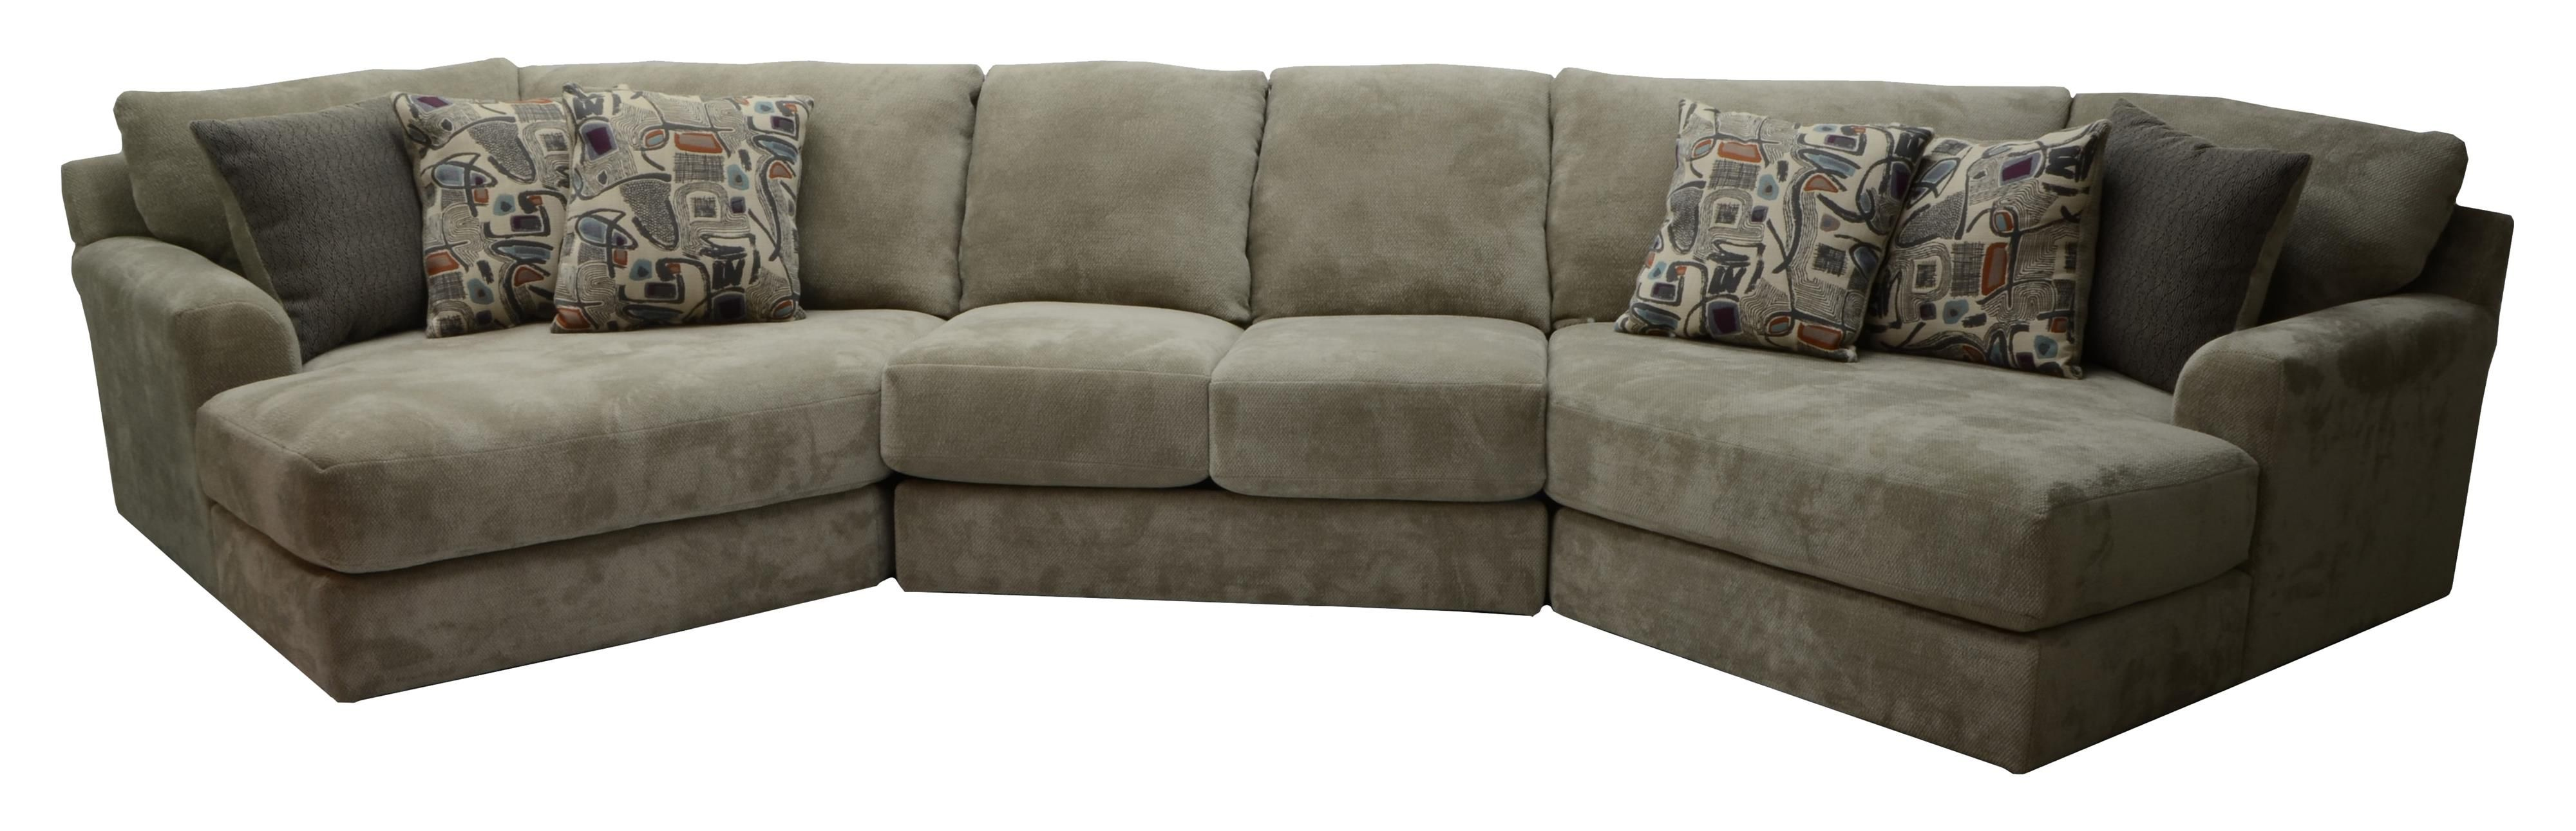 Malibu Four Seat Sectional Sofa By Jackson Furniture For